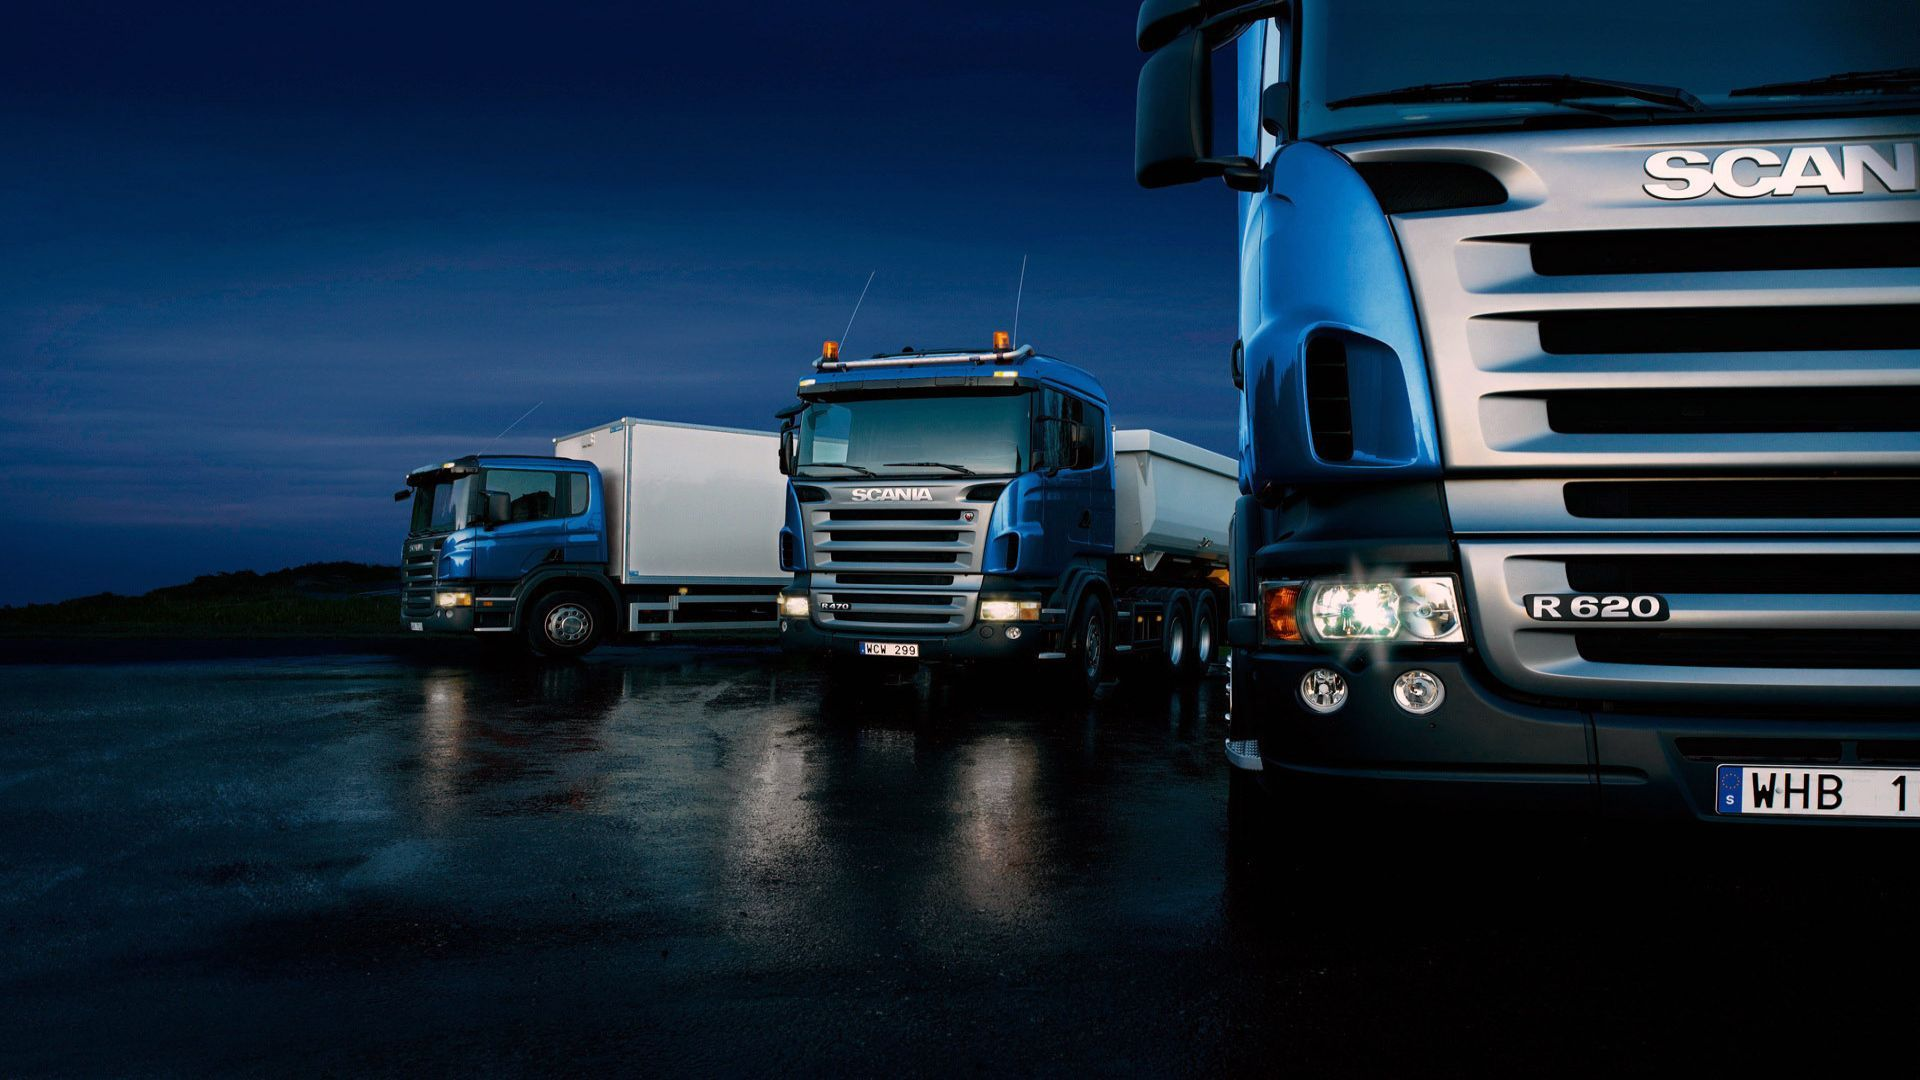 Scania Trucks Picture For Desktop Wallpaper With Images Cool